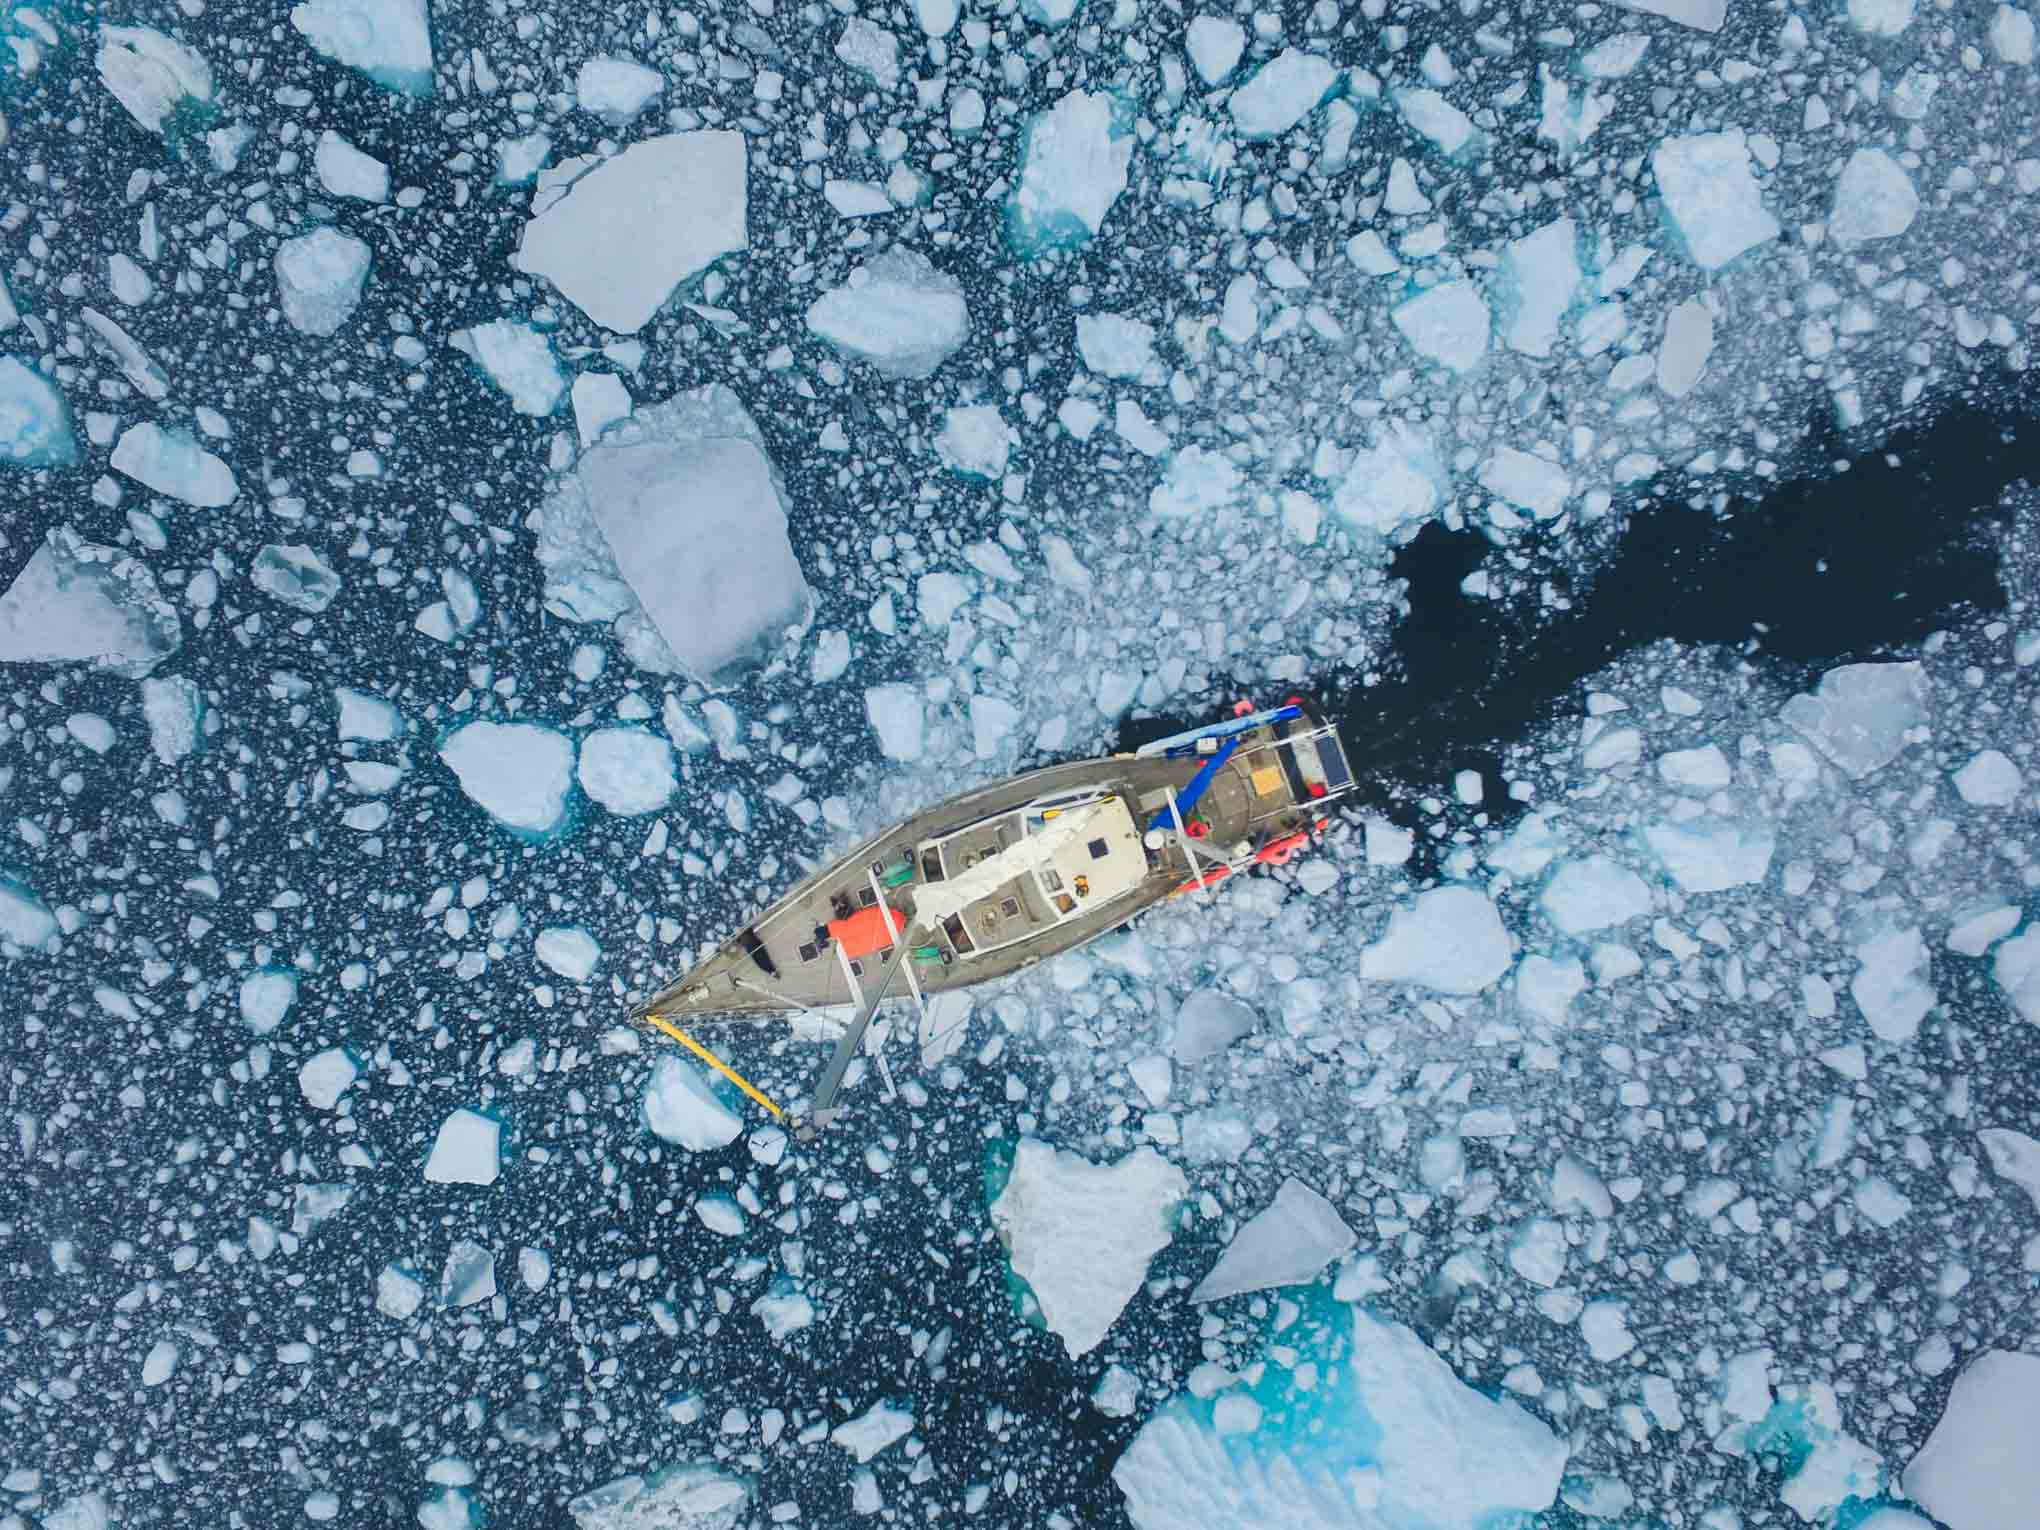 Breaking ice during the Antarctica Photography workshop with Marco Grassi Photography